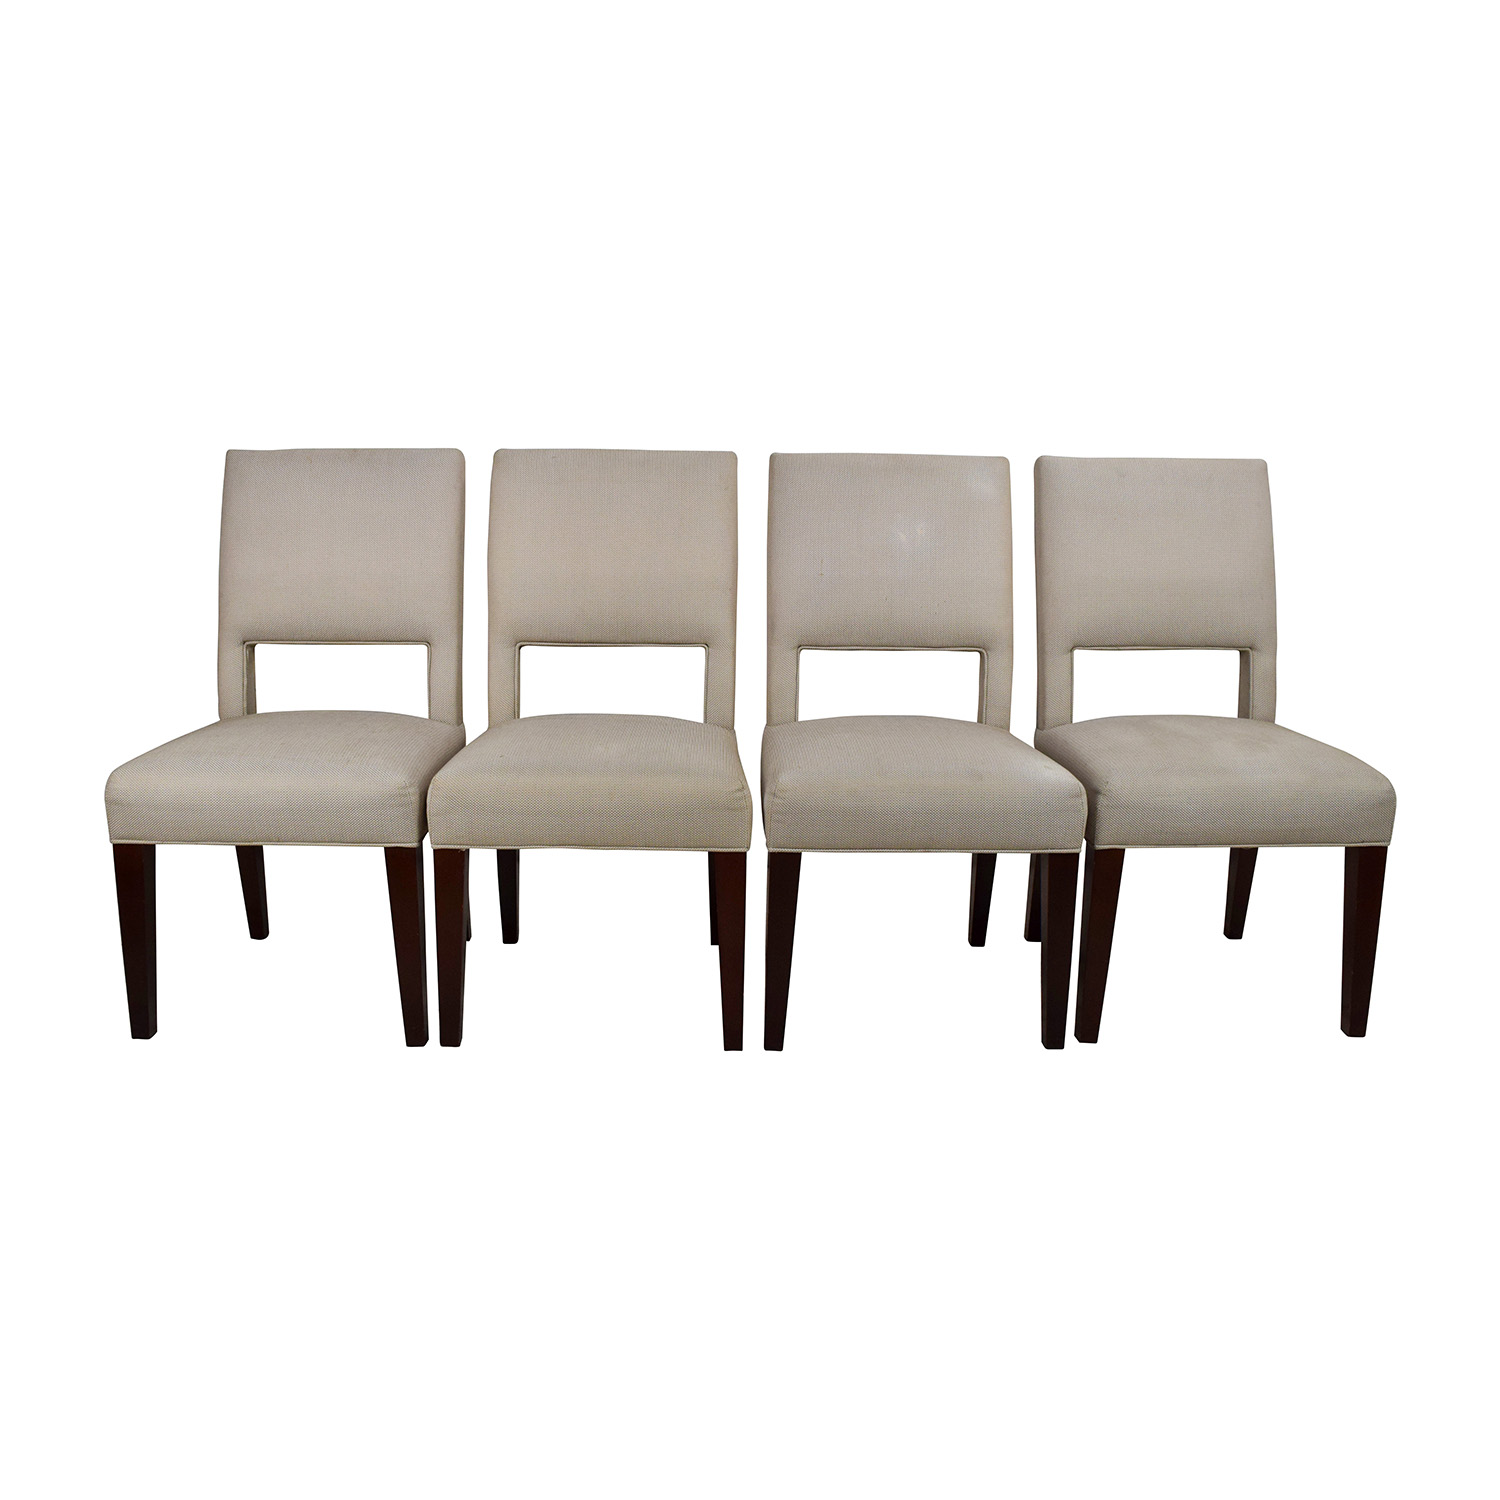 Set of 4 Dining Chairs price